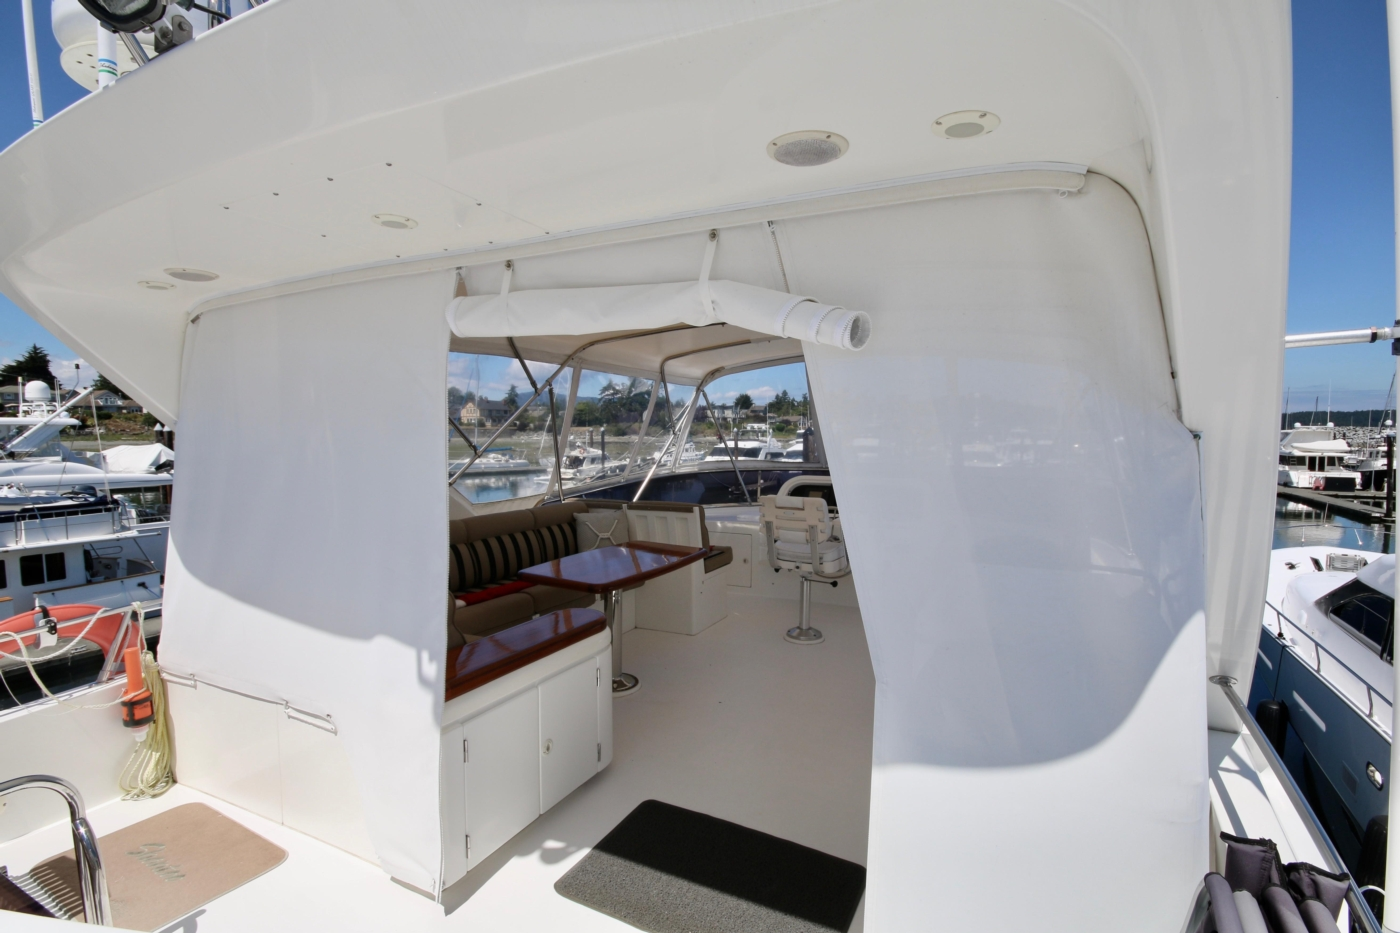 2002 Monte Fino 68, Aft Entrance to F/B from Boat Deck